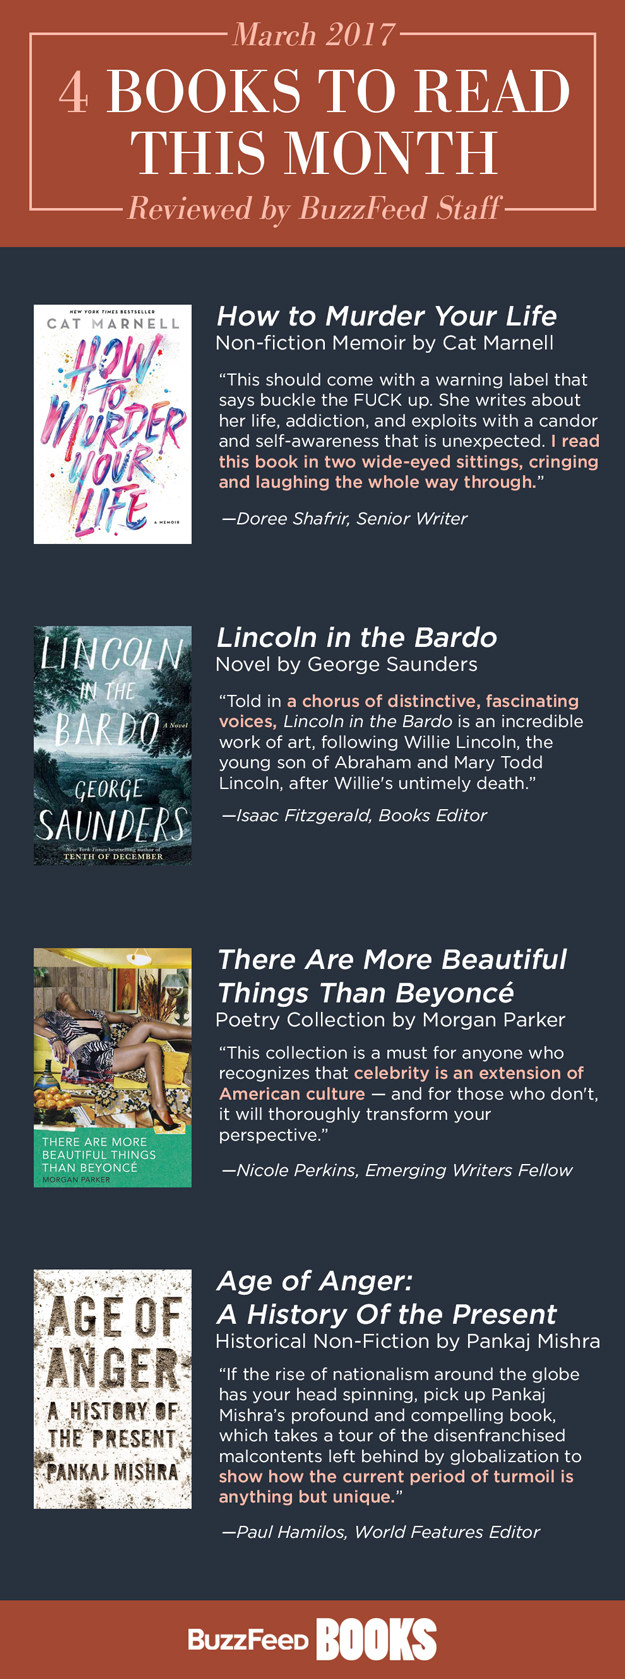 Pick a new book to read that piques your interest.